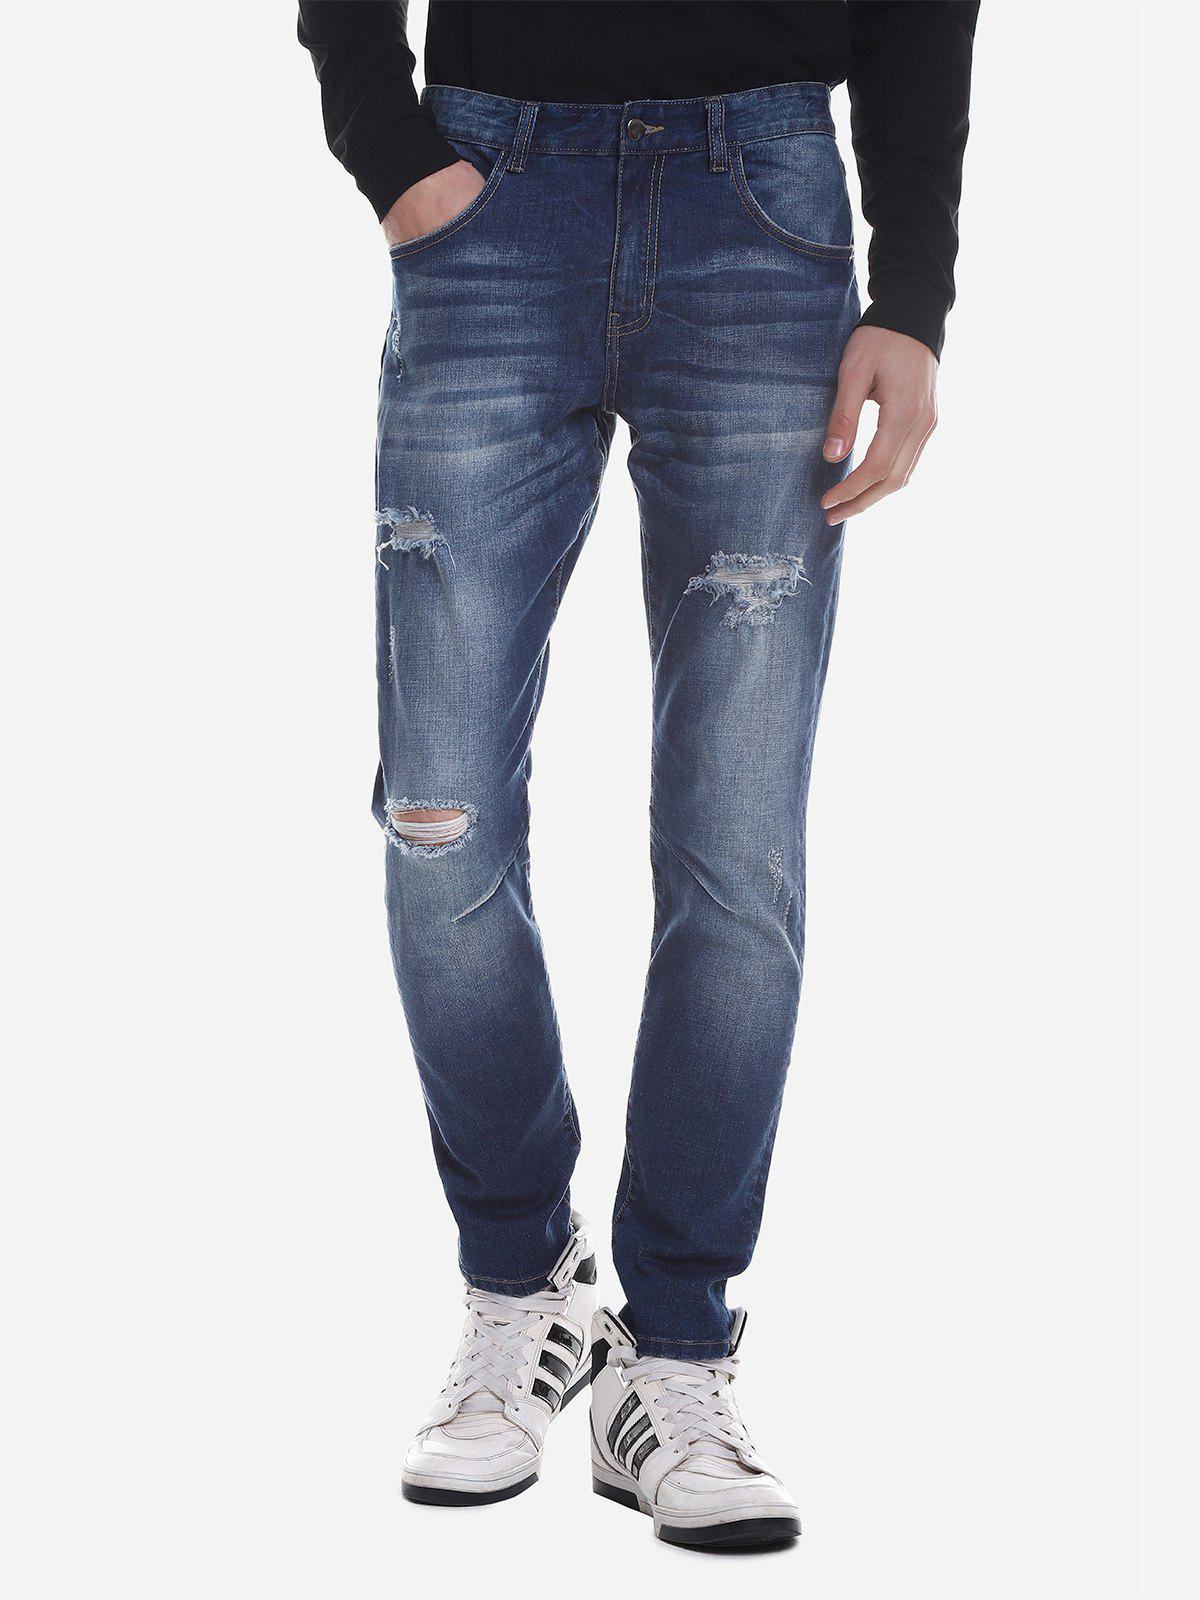 Jeans Skinny Faded Bleu 31